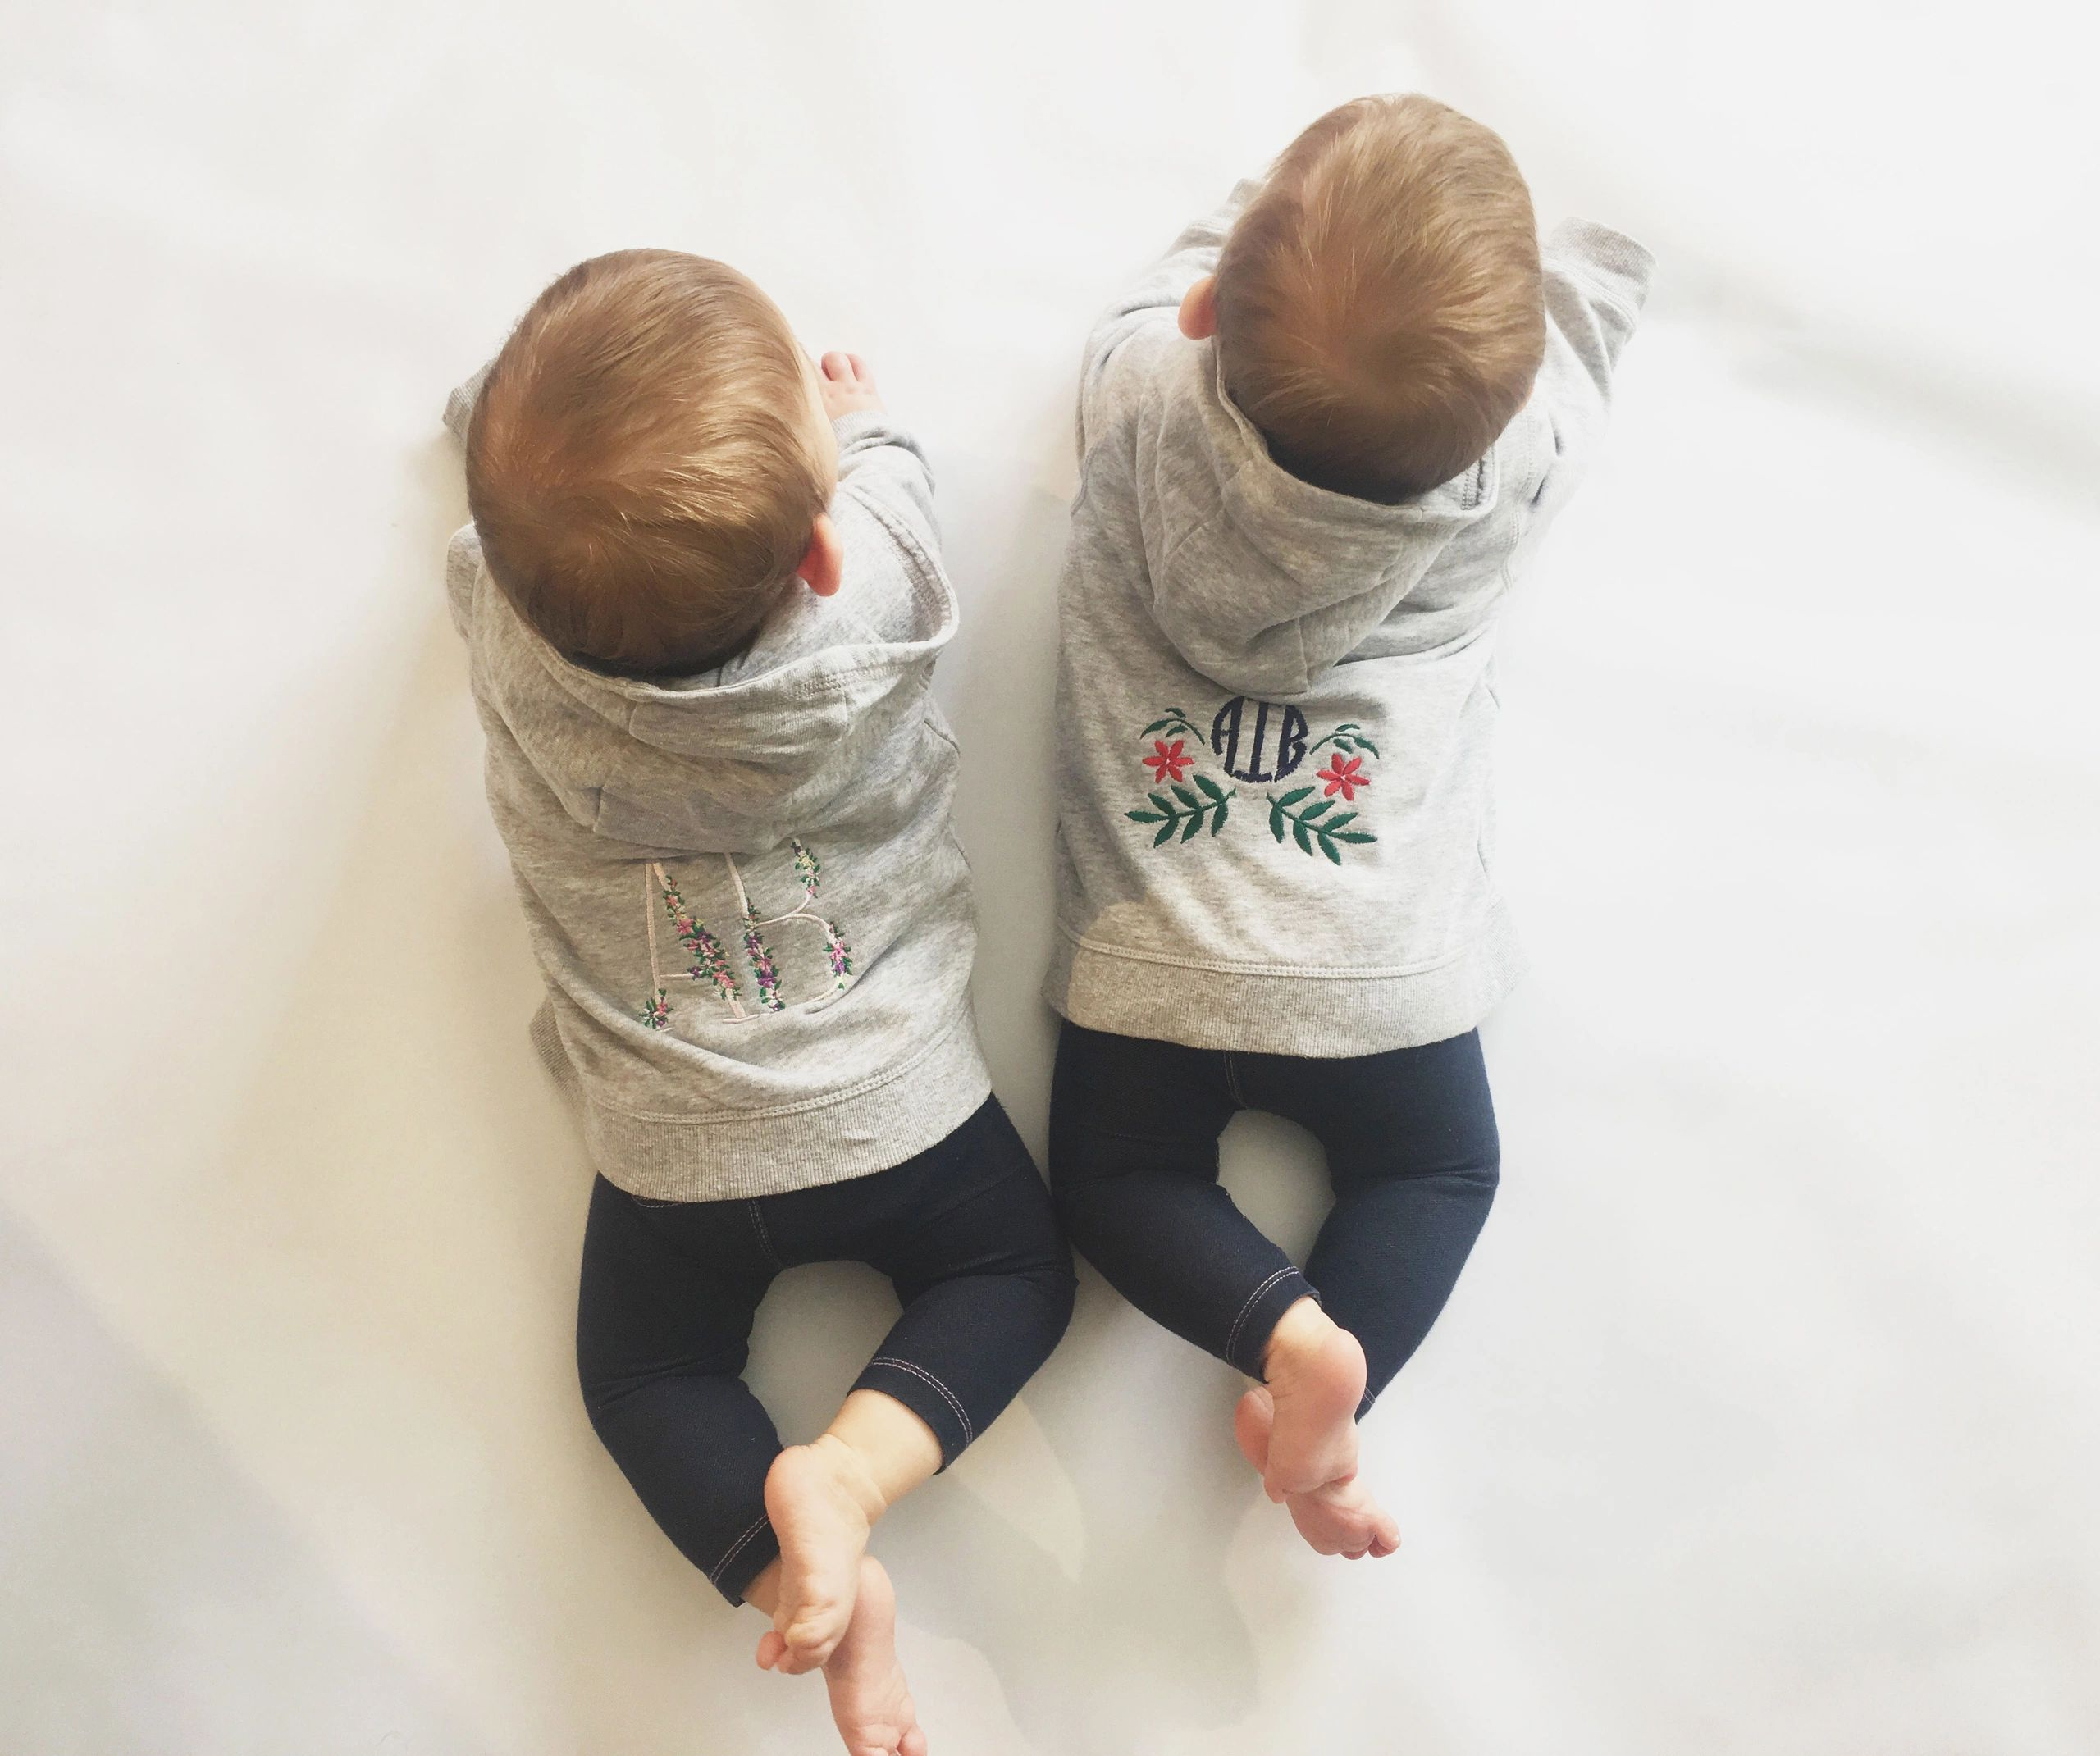 Stylish Personalised Baby Clothes Shop a wide range of Unique and